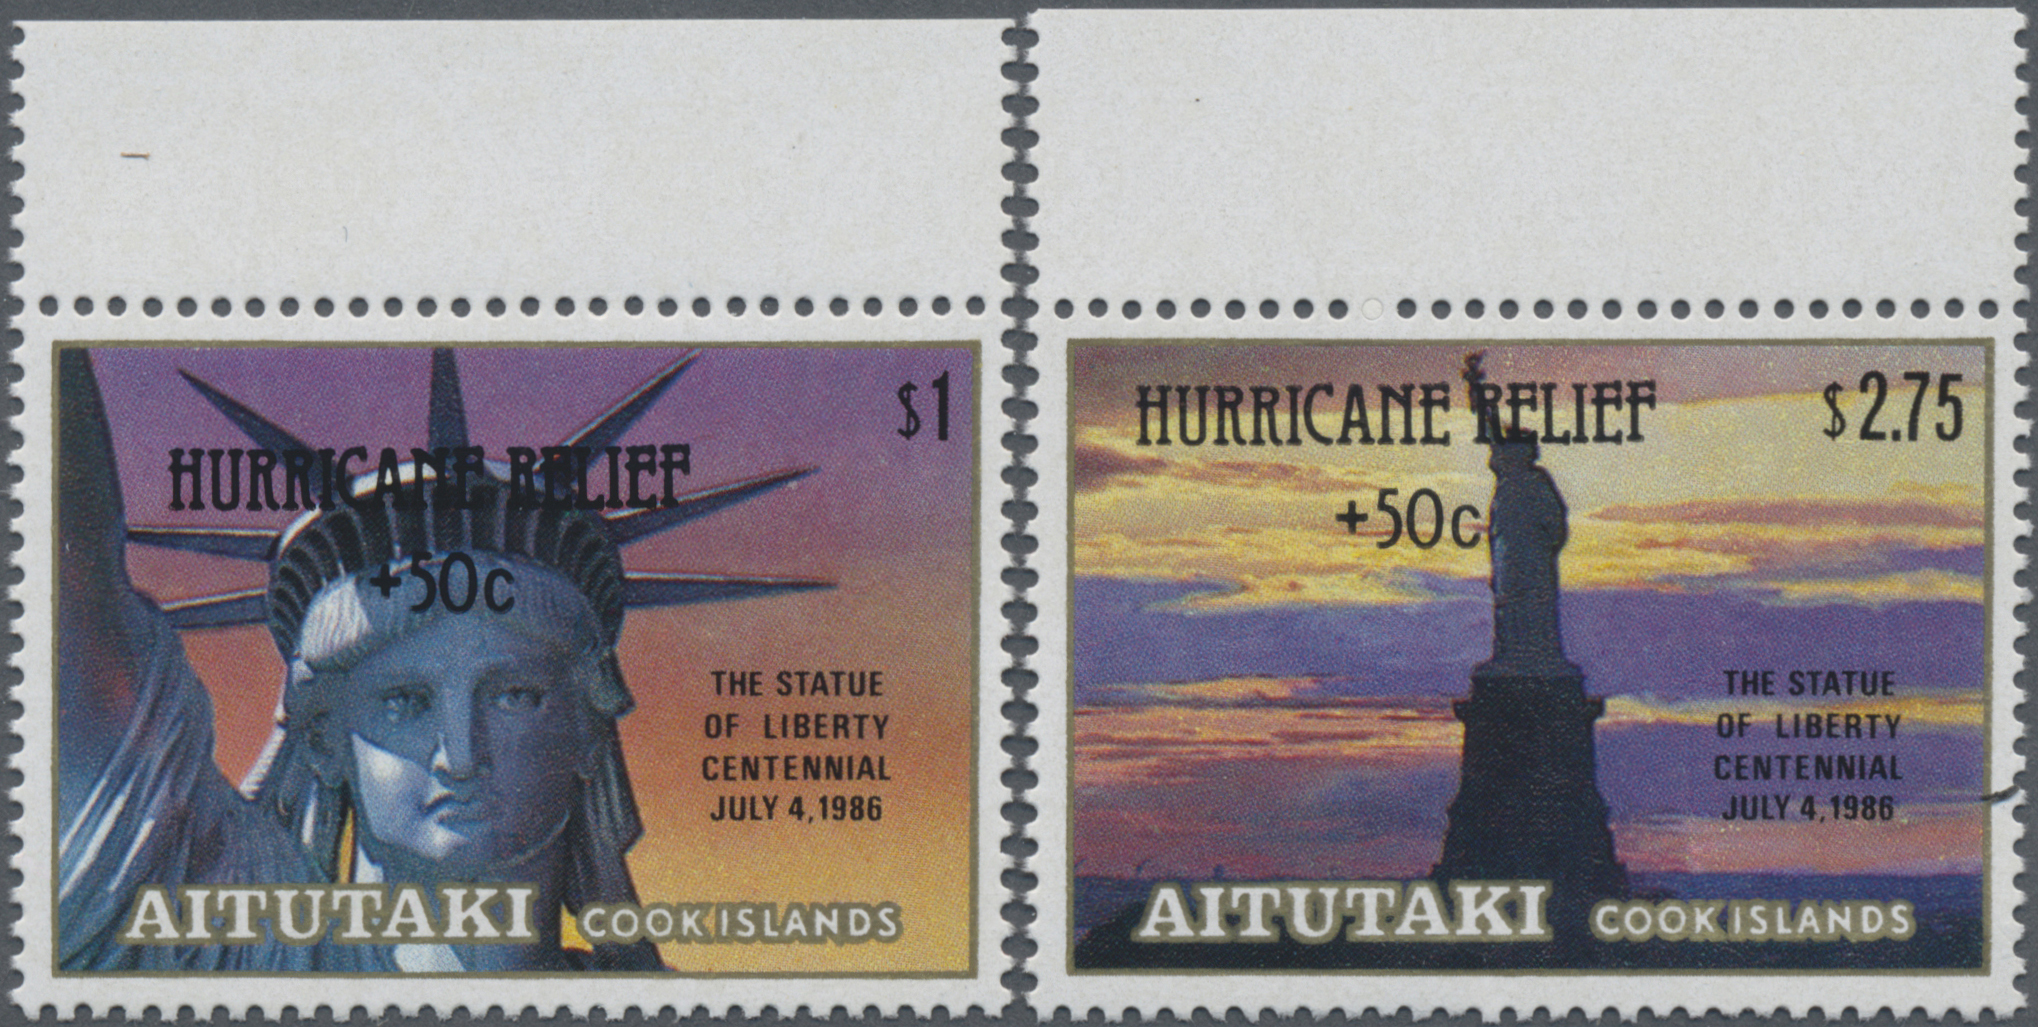 Lot 15905 - Thematik: Sehenswürdigkeiten-Freiheitsstatue / sights- statue of liberty  -  Auktionshaus Christoph Gärtner GmbH & Co. KG Sale #48 collections Overseas  Airmail / Ship mail & Thematics